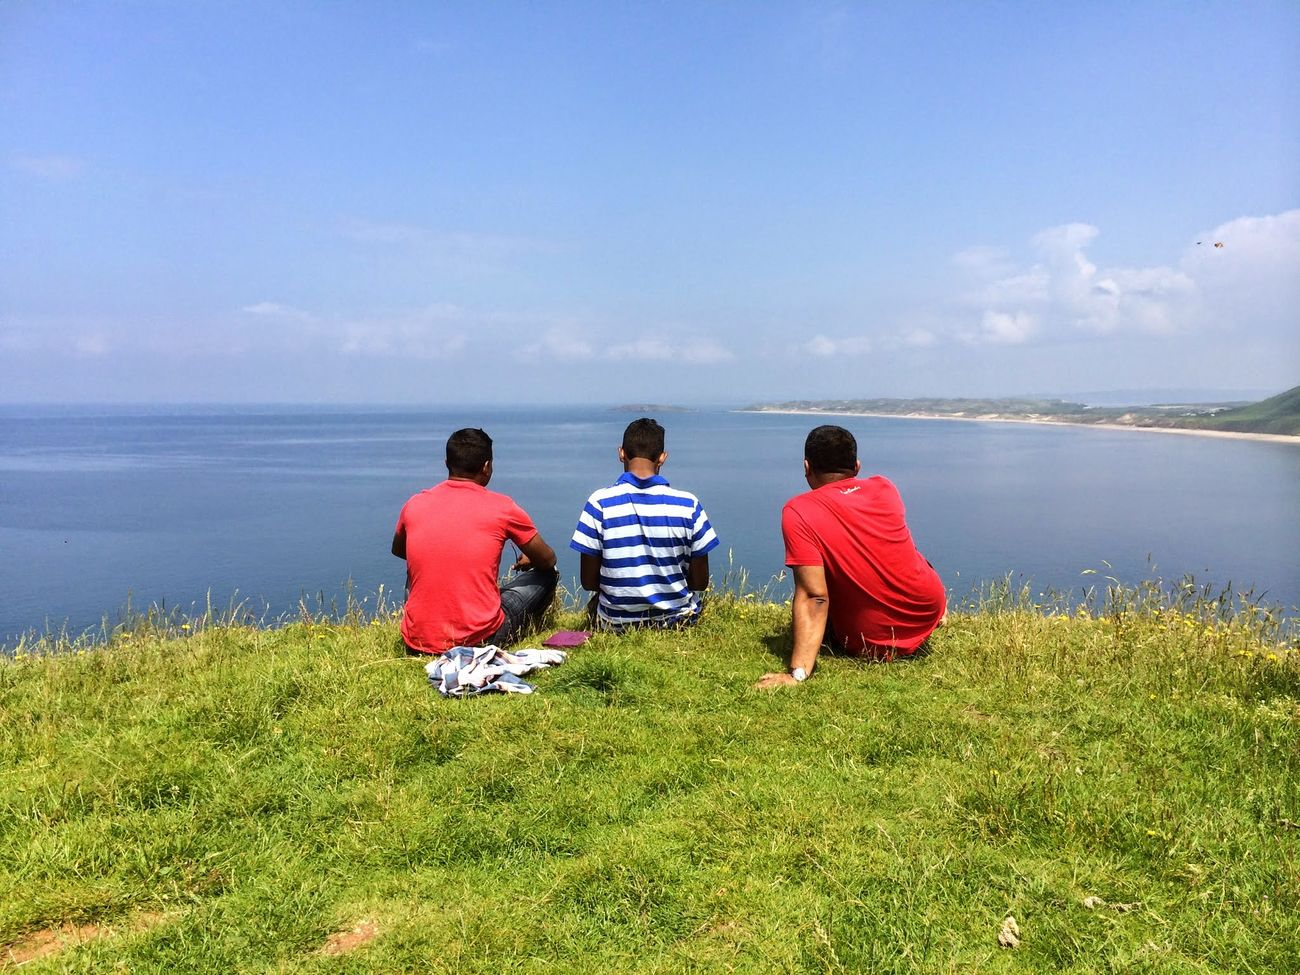 Swansea Beach Blue Water Green Color Grass Breathless View Peace And Quiet HillTopView No Pollution Clear Sky 3 Boys Red Colour Clean Air White Clouds Close To Nature End Of Land Summer ☀ Ocean Blue Sky Neighborhood Map